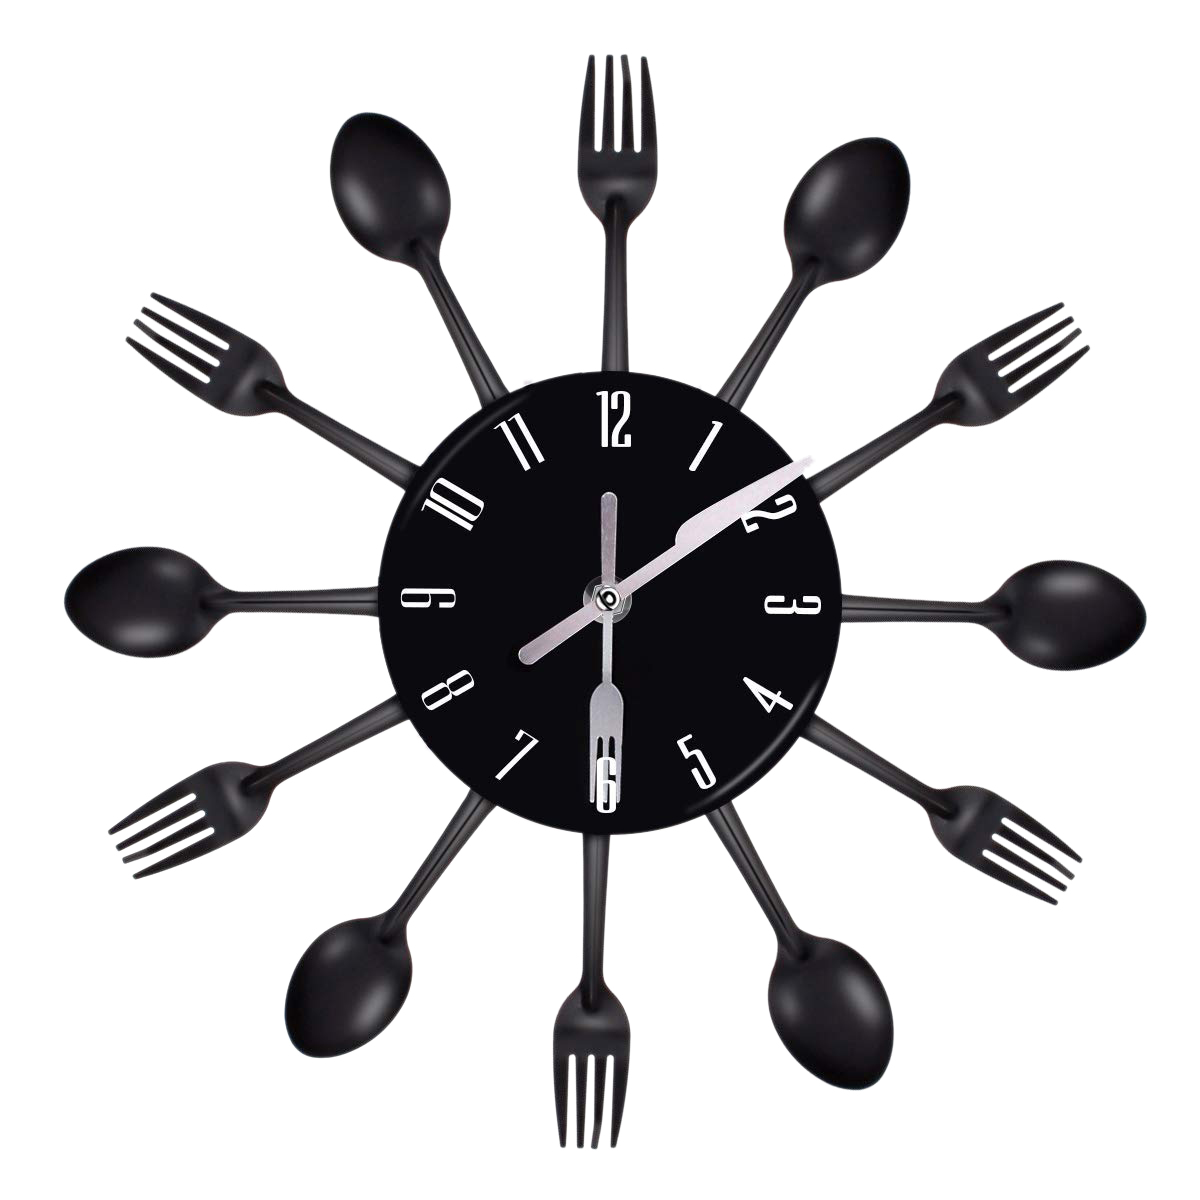 US $10.04 19% OFF Stainless Steel Cutlery Clocks Knife and Fork Spoon Wall  Clock Kitchen Restaurant Home Decorations-in Wall Clocks from Home & Garden  ...